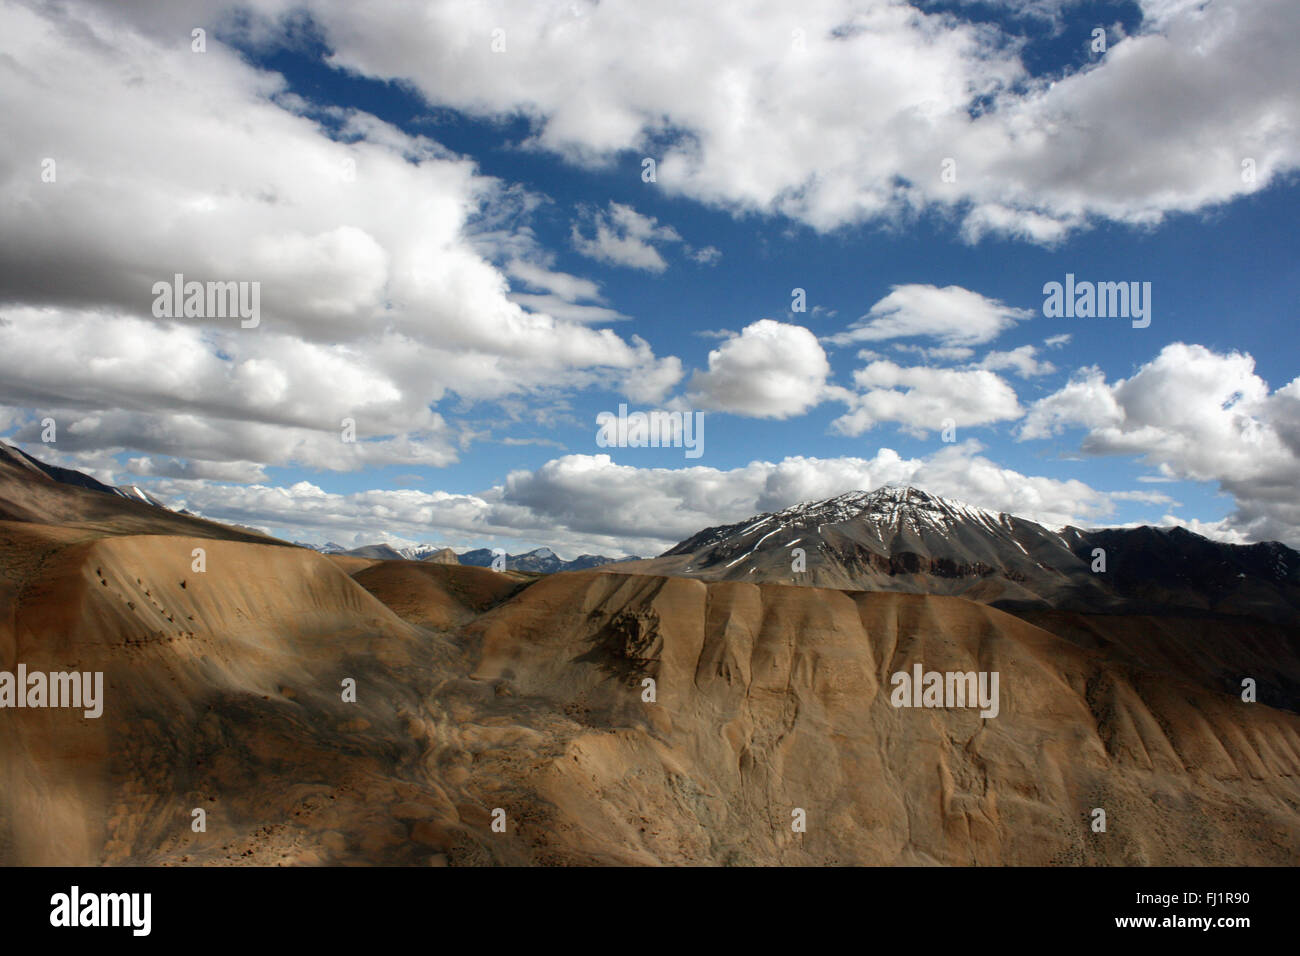 Amazing landscape on the Leh Manali road, Ladakh , India - Stock Image